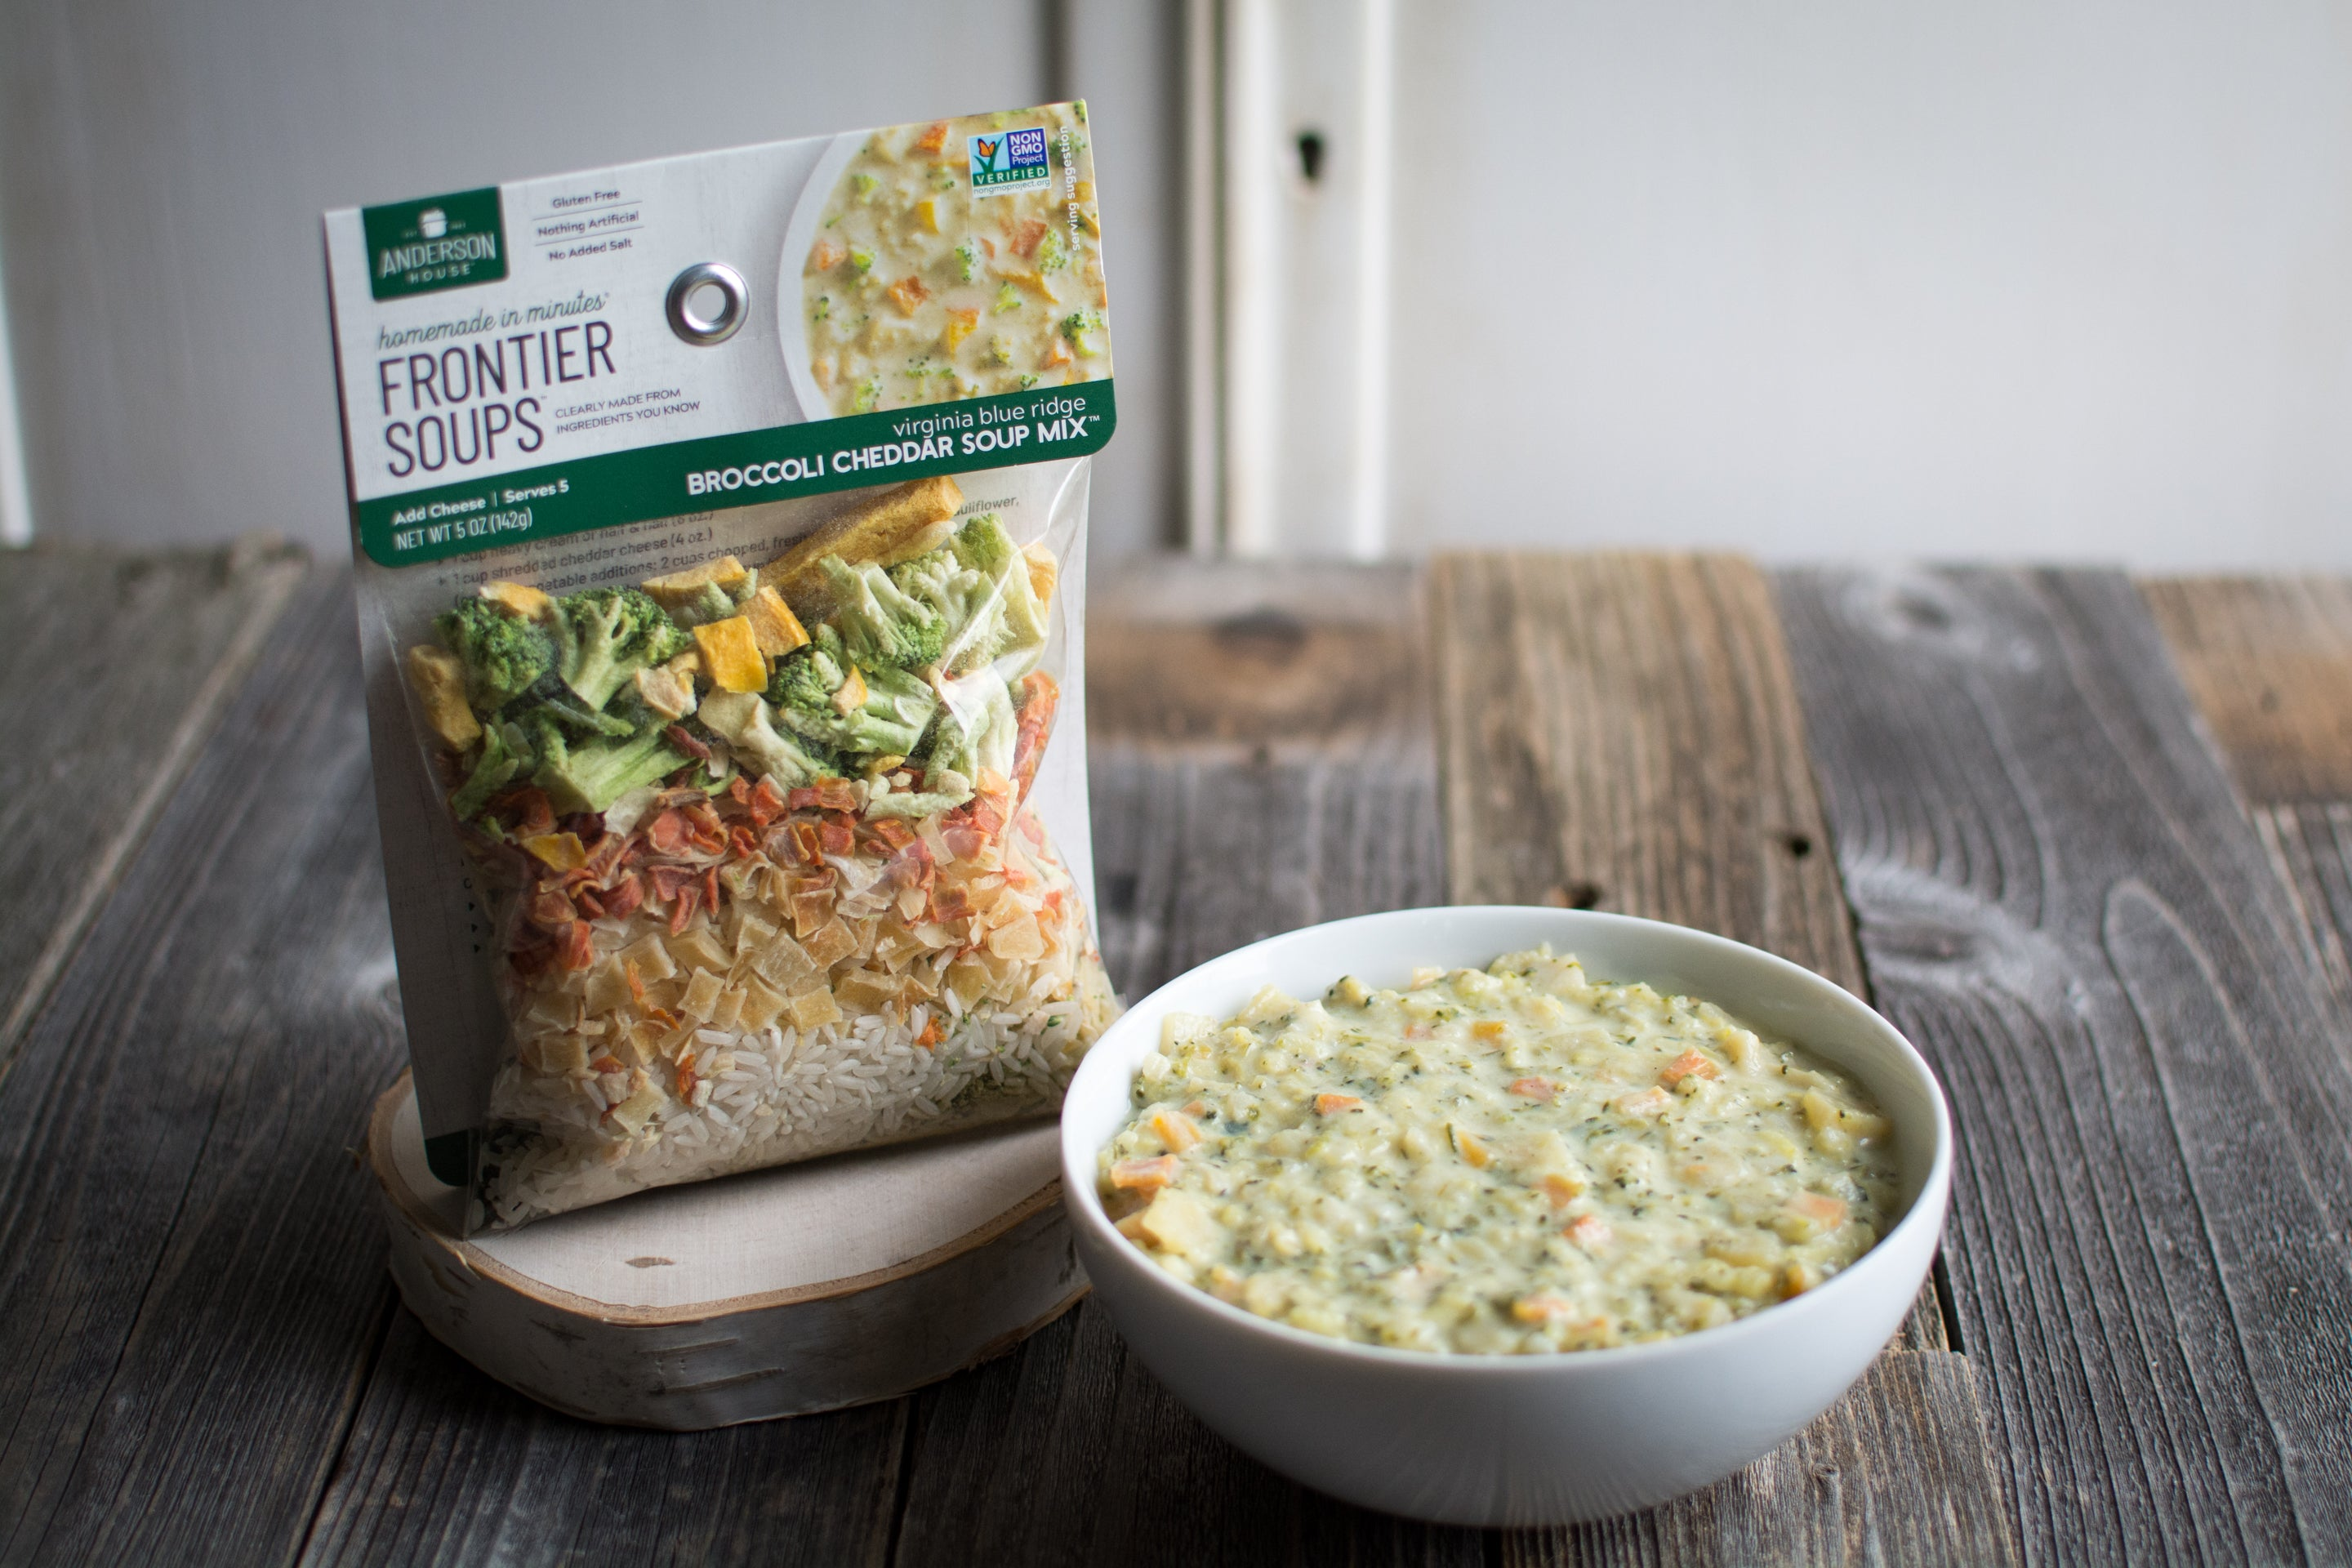 Virginia Blue Ridge Broccoli Cheddar Soup Mix